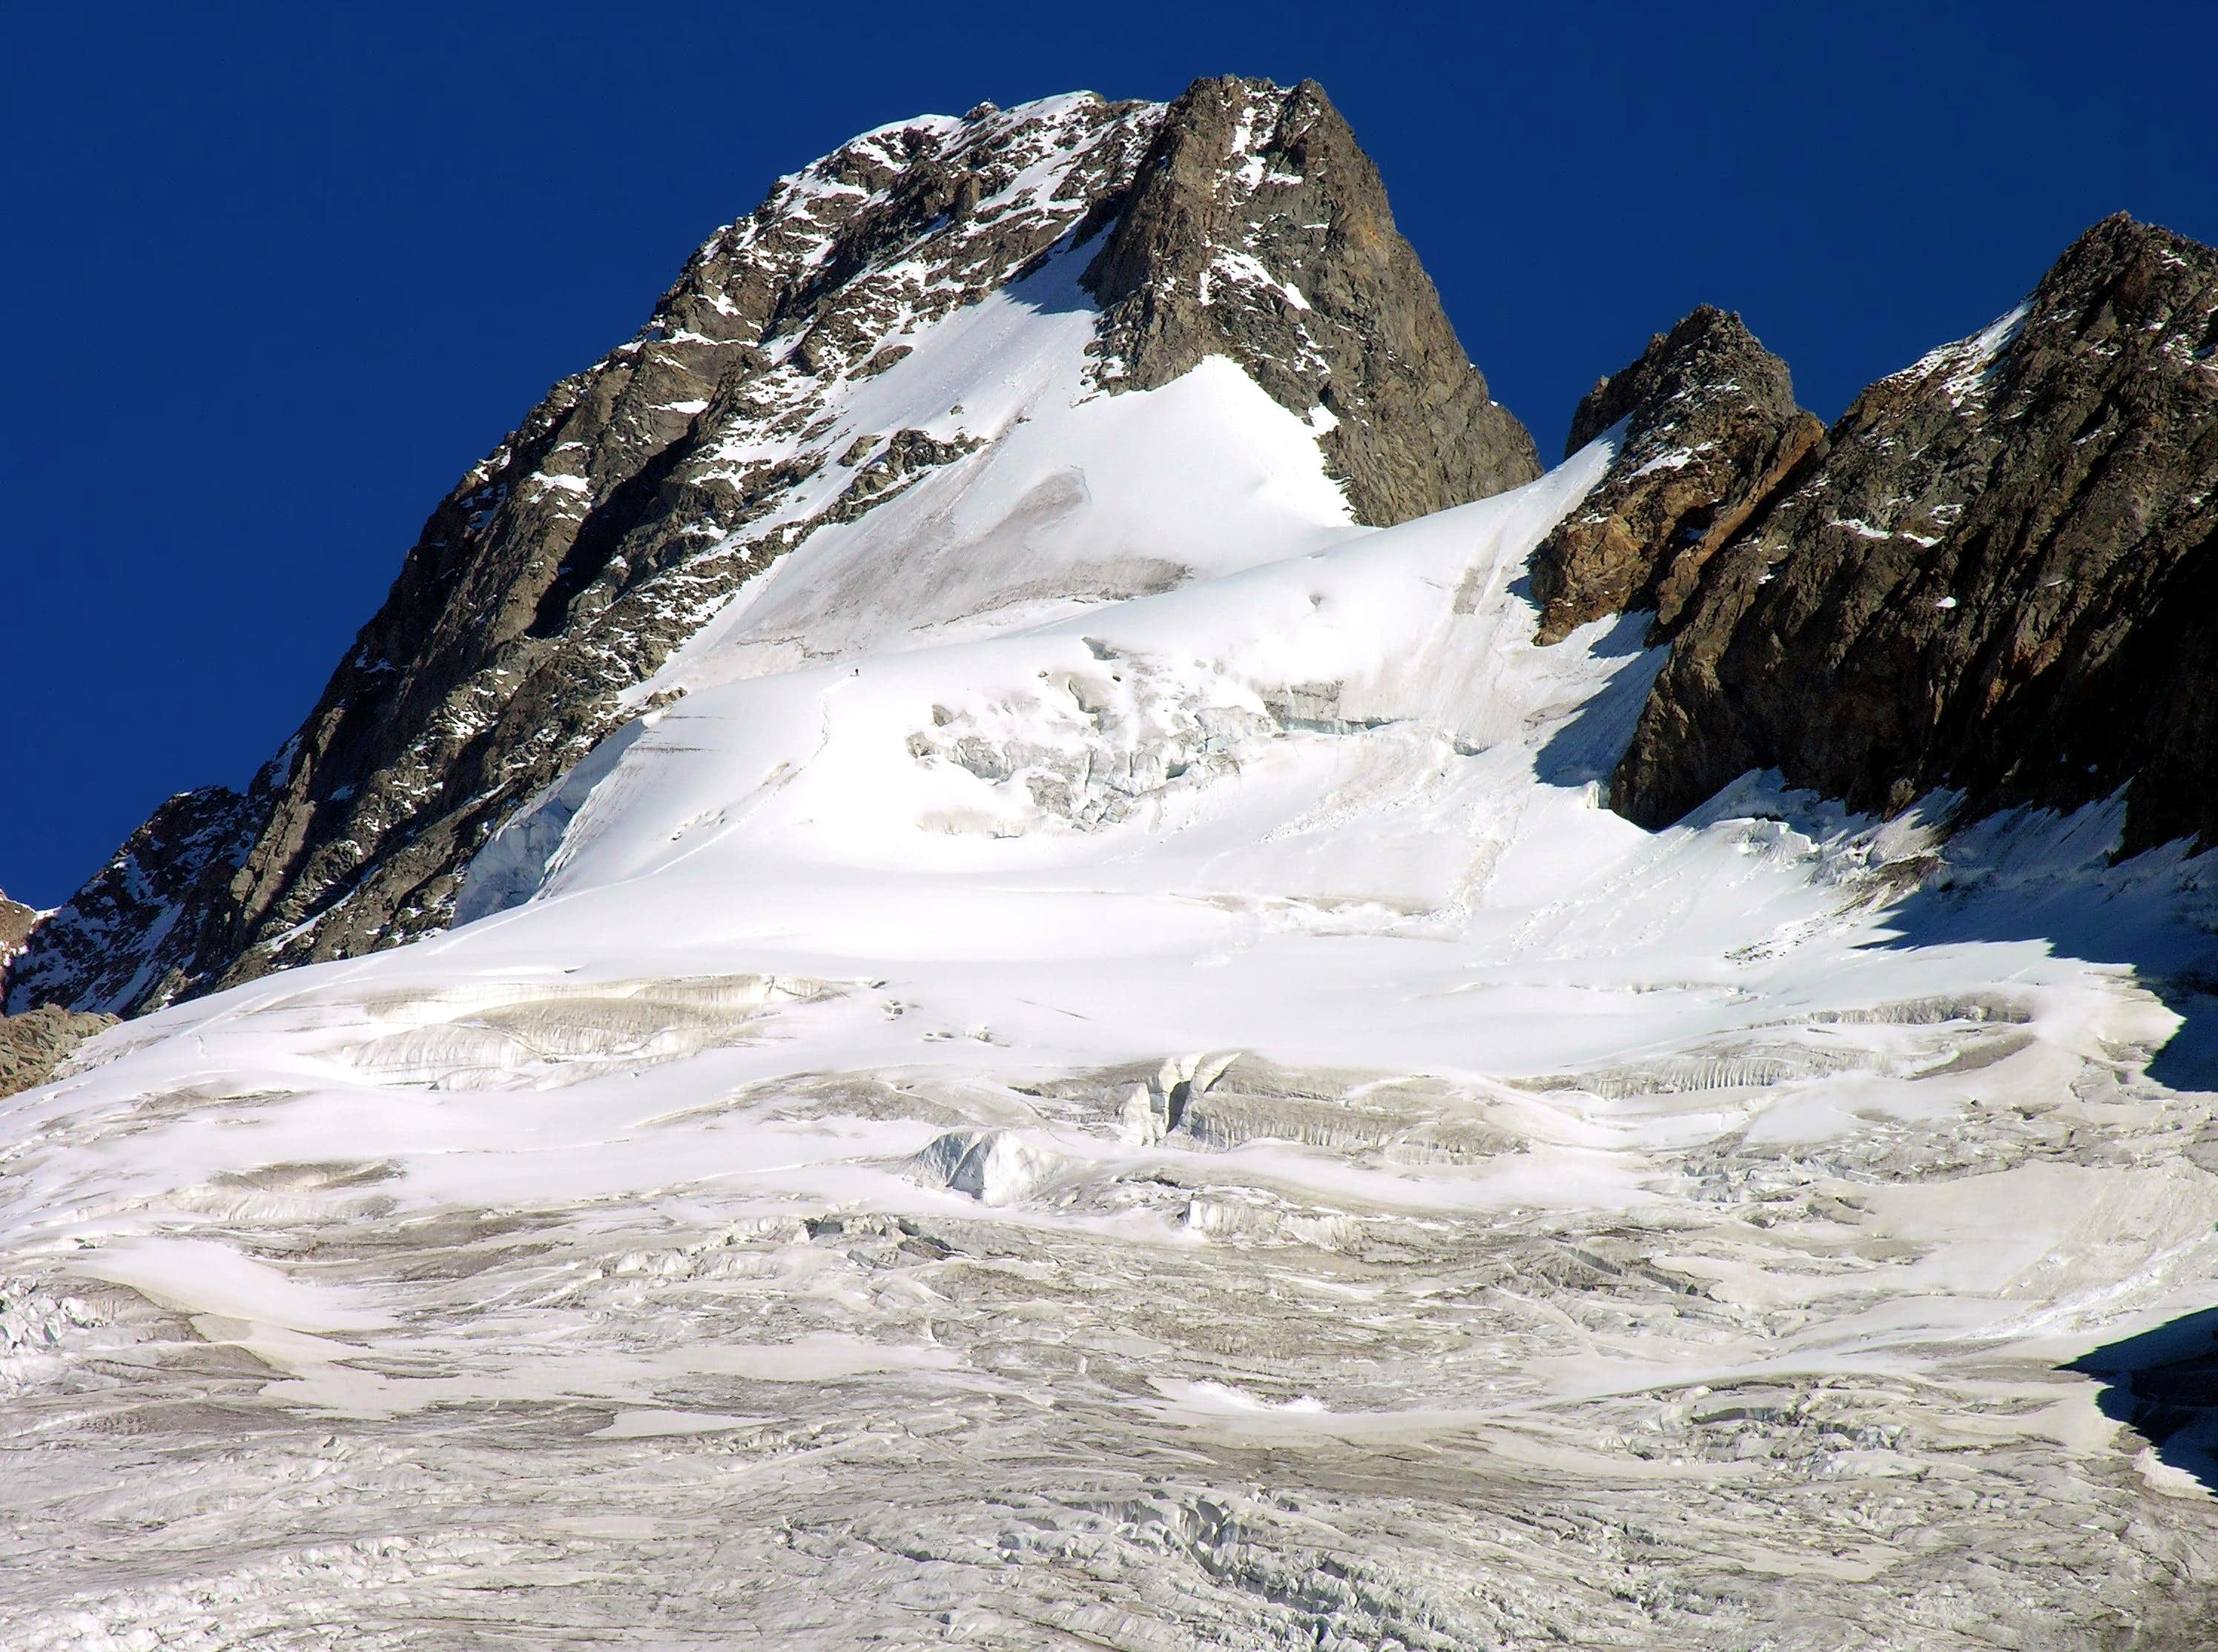 <font color=blue>▲</font>Mont Dolent from Arête du Grapillon (3823m)